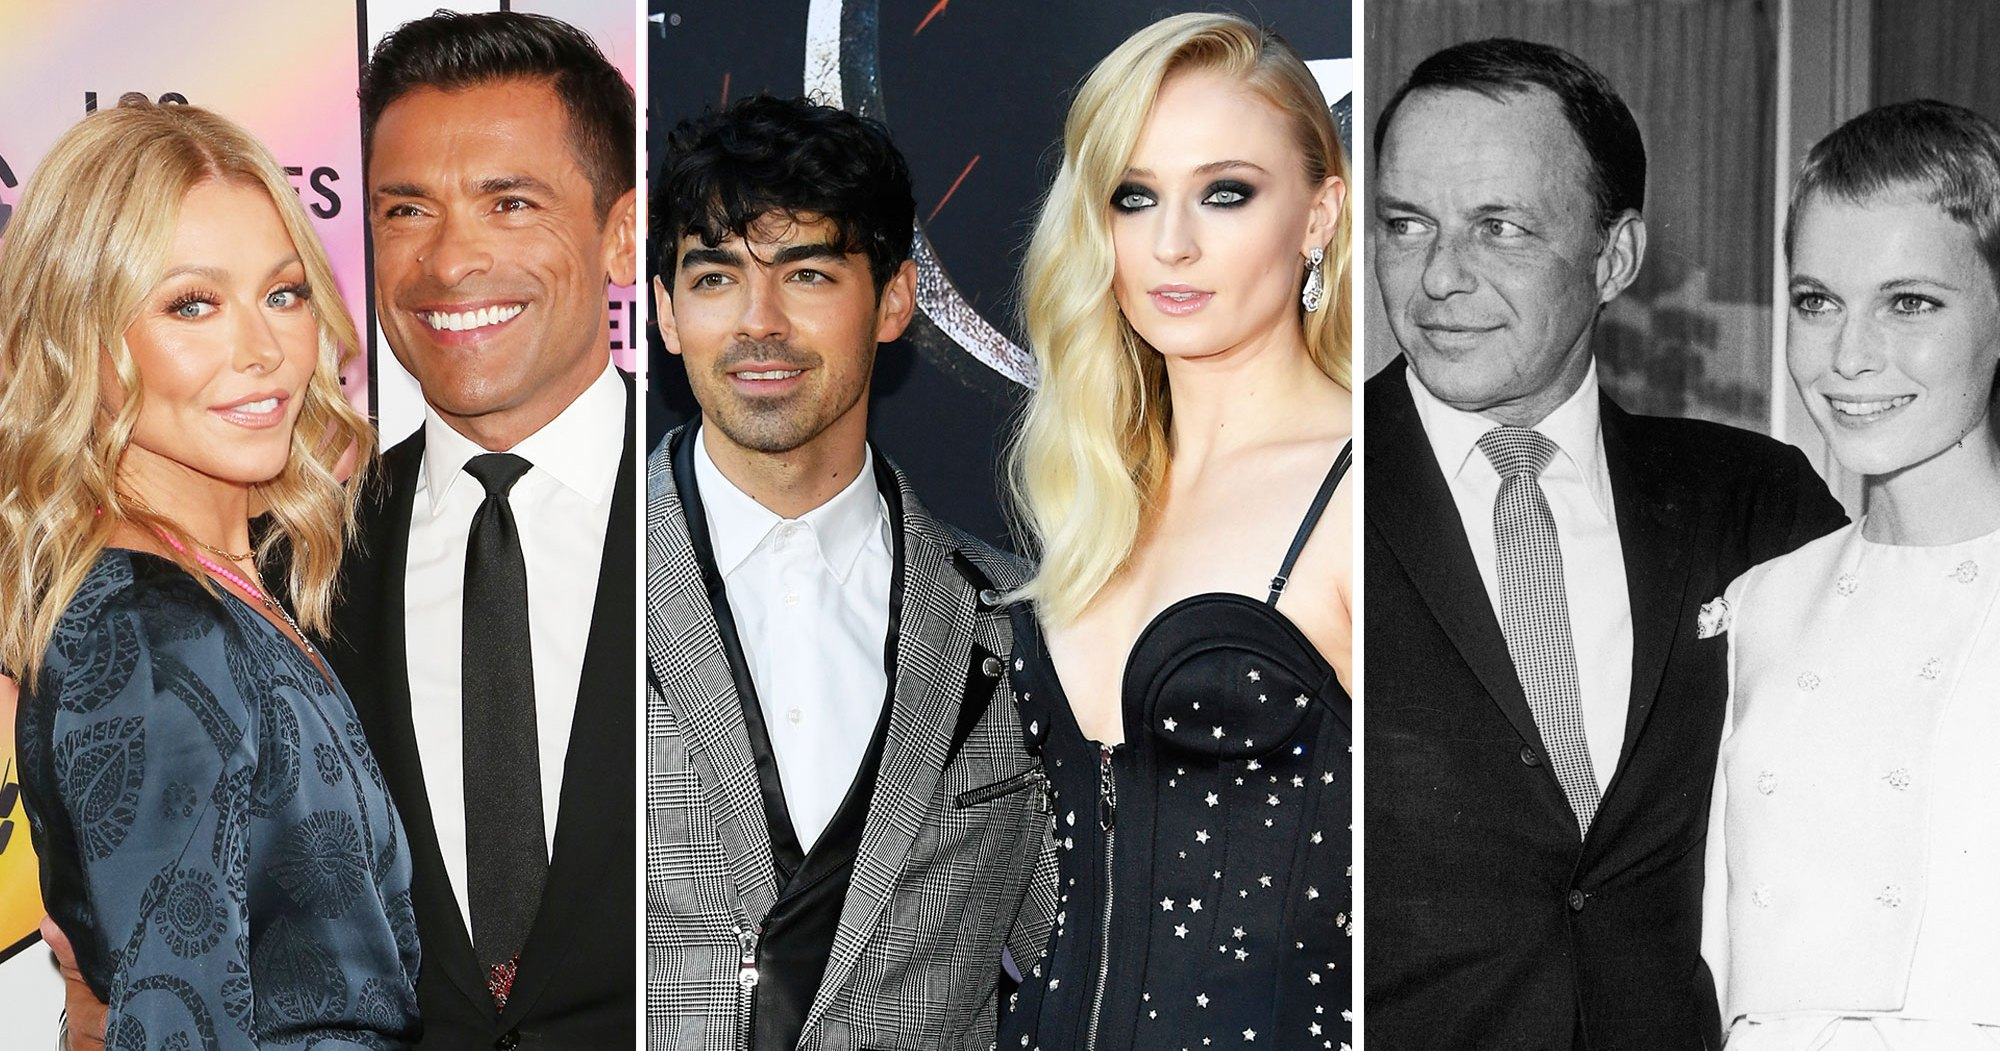 Kelly Ripa and Mark Consuelos, Joe Jonas and Sophie Turner, More Celeb Couples Who Wed in Las Vegas